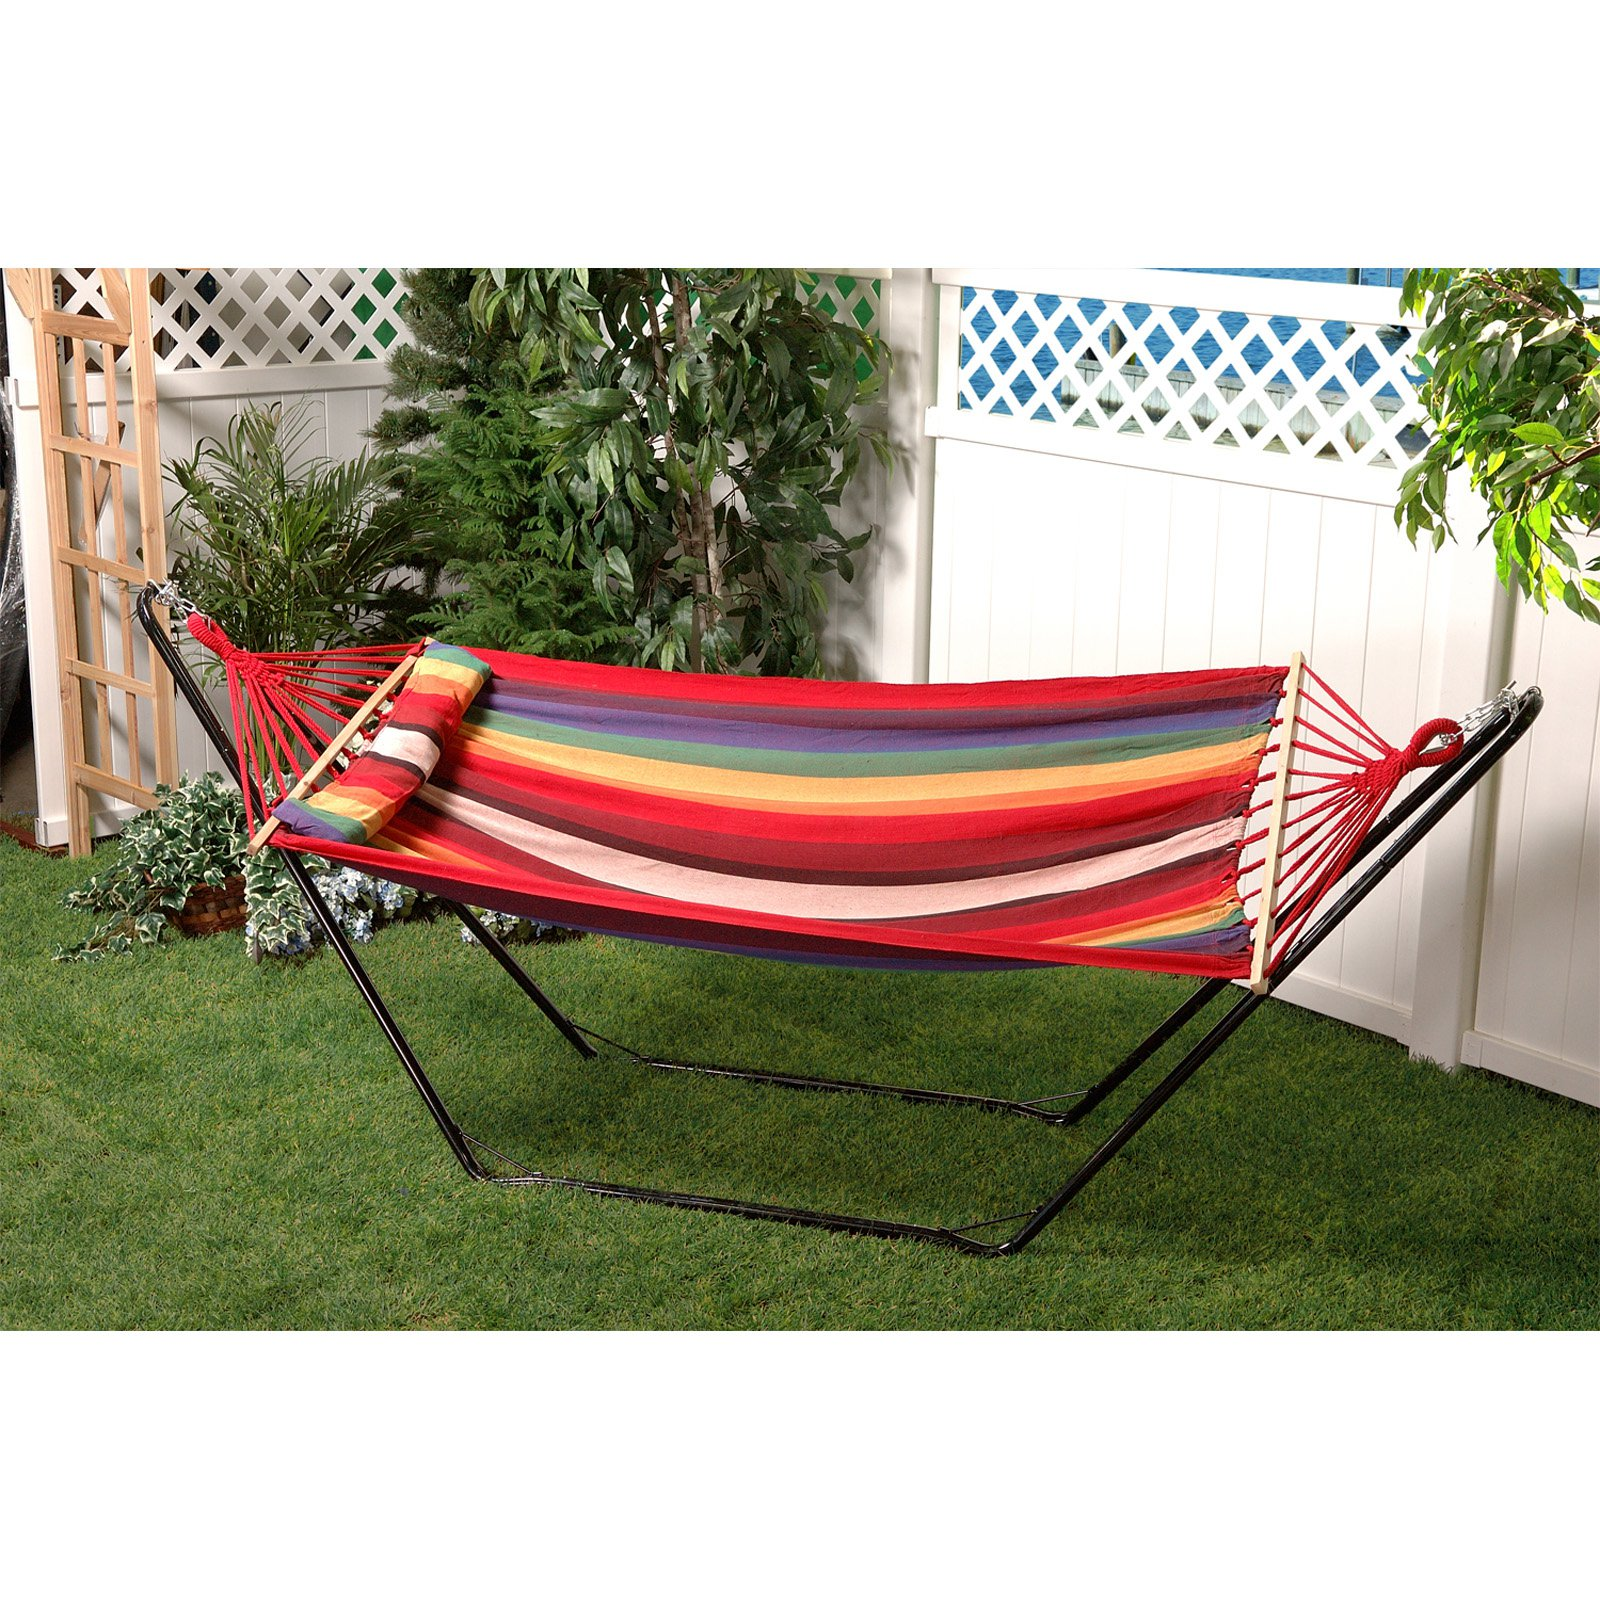 bliss hammocks oversized fabric single hammock with spreader bar and pillow bliss hammocks oversized fabric single hammock with spreader bar      rh   walmart